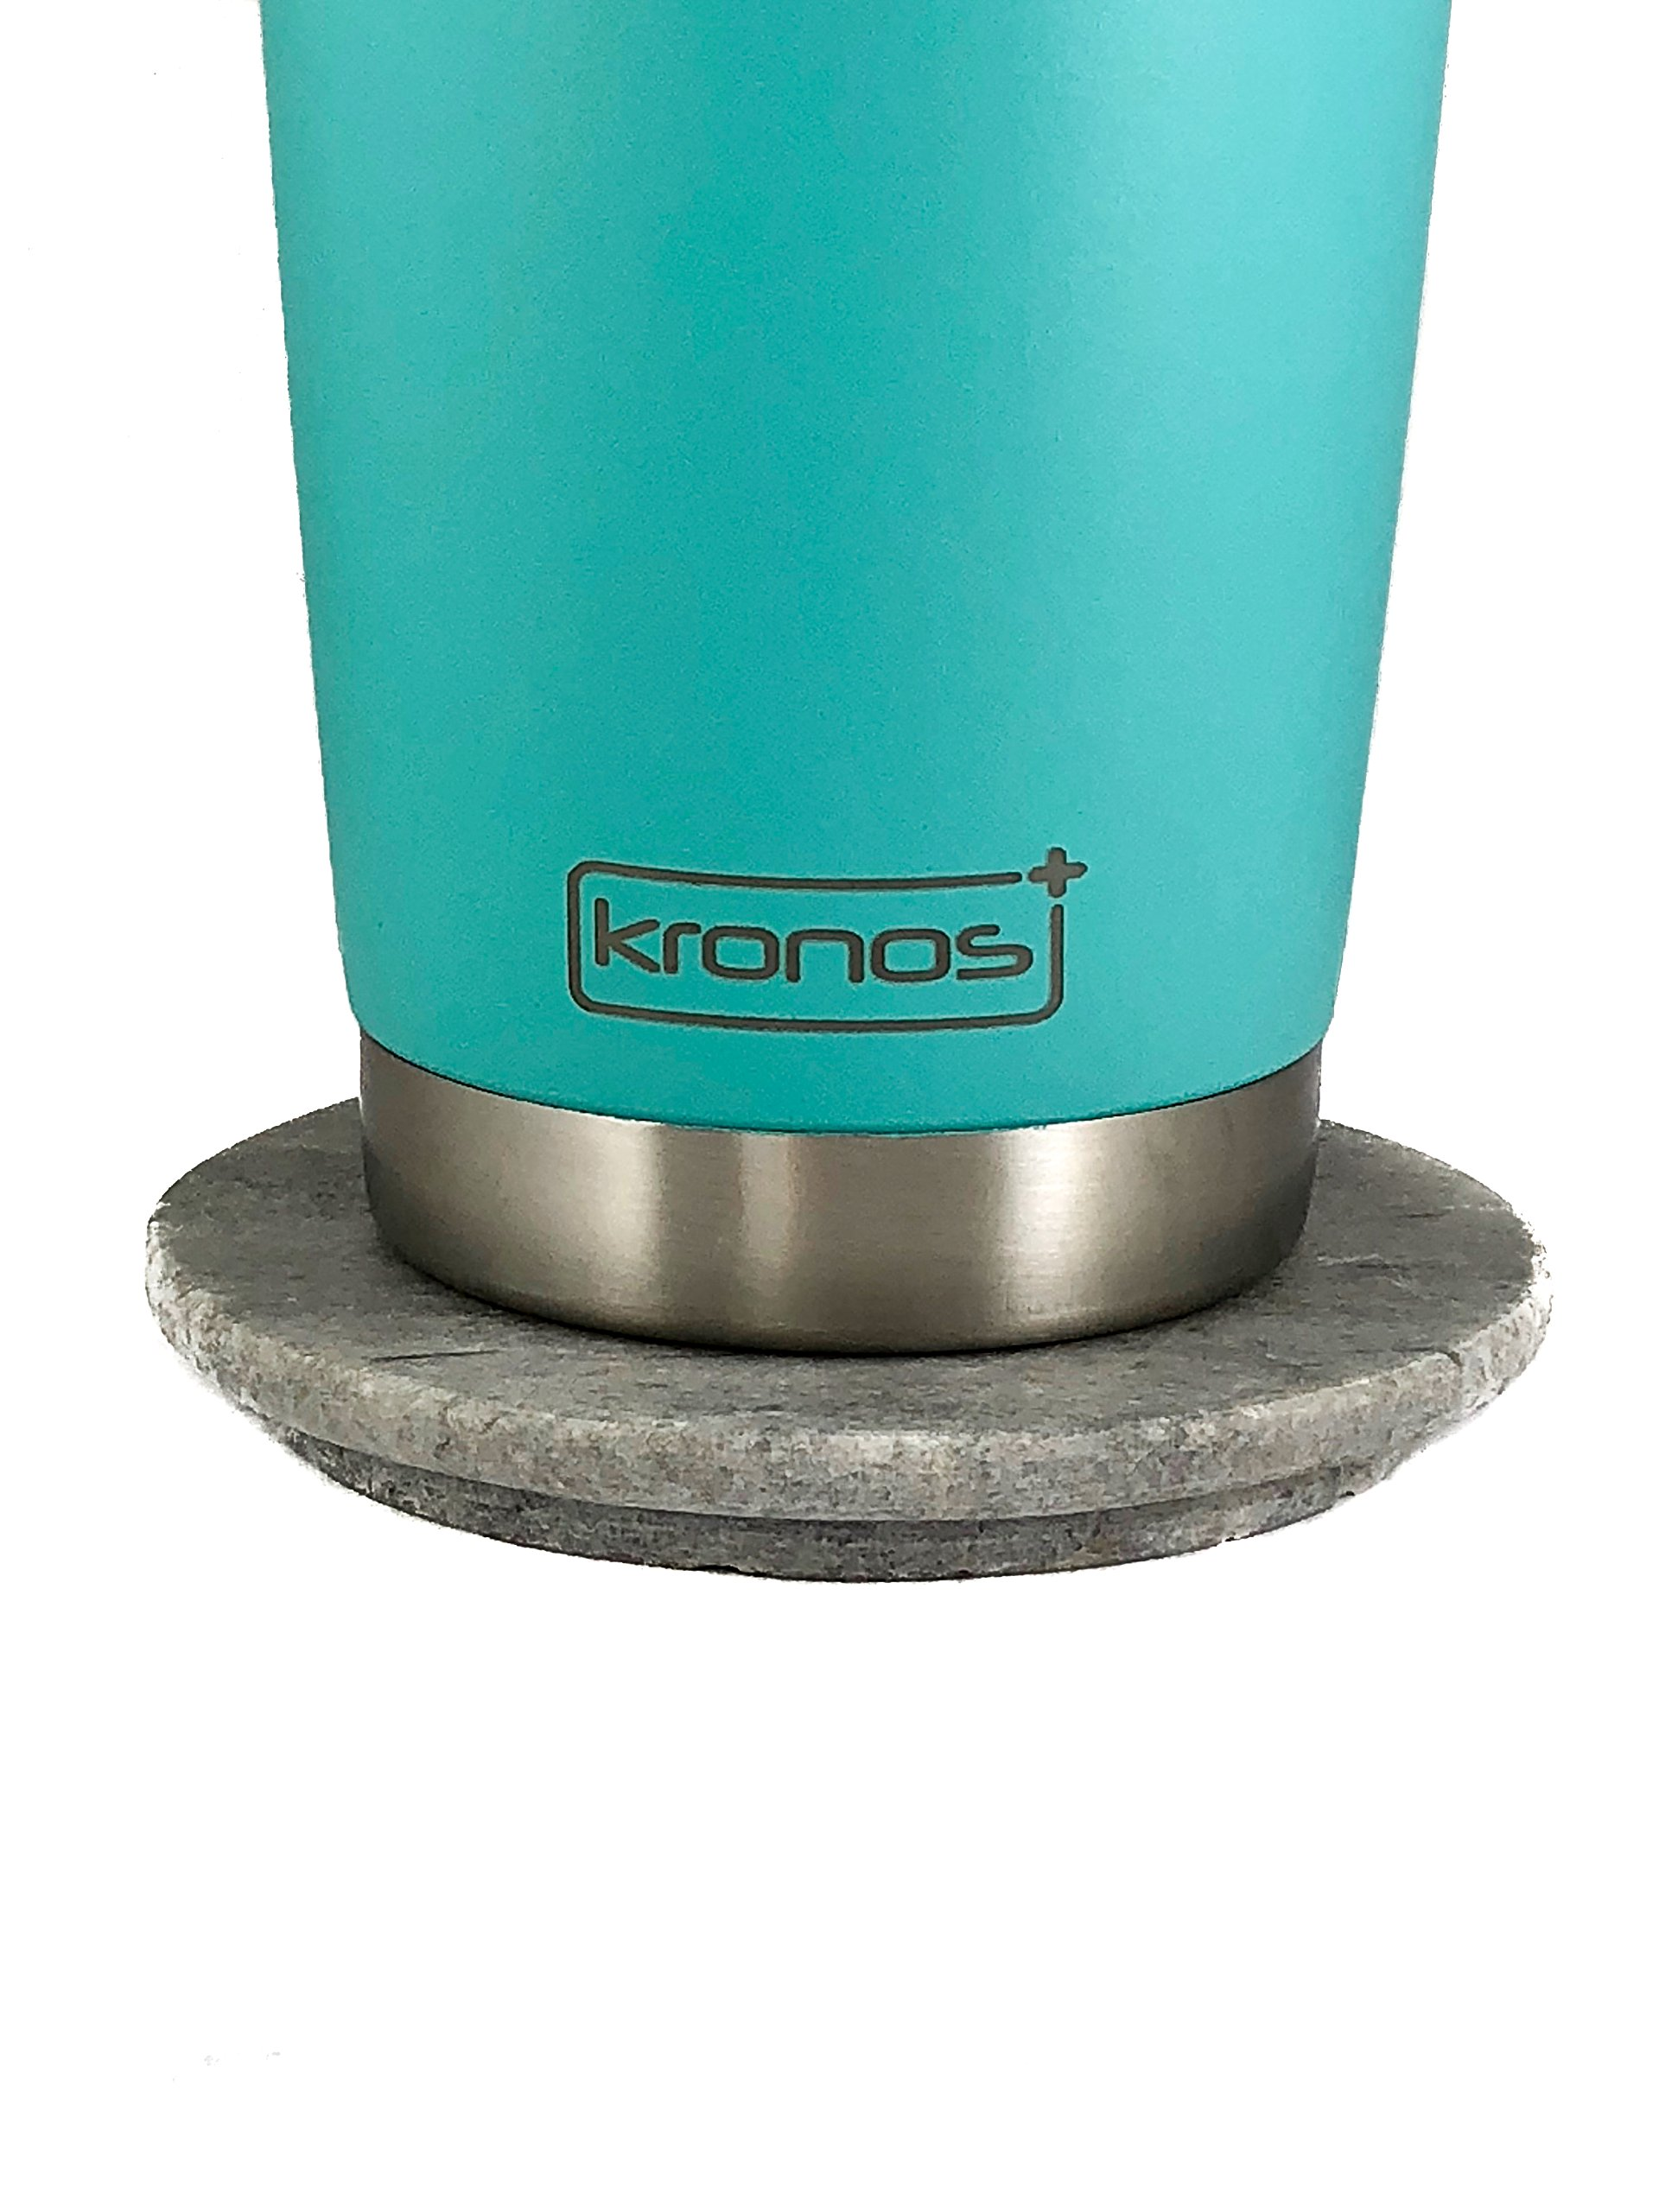 ( SEA FOAM ) Dishwasher Safe 20 oz Vacuum Insulated Thermos with High Quality Matte Finish - Coffee Mug Tumbler by Kronos + (Image #7)